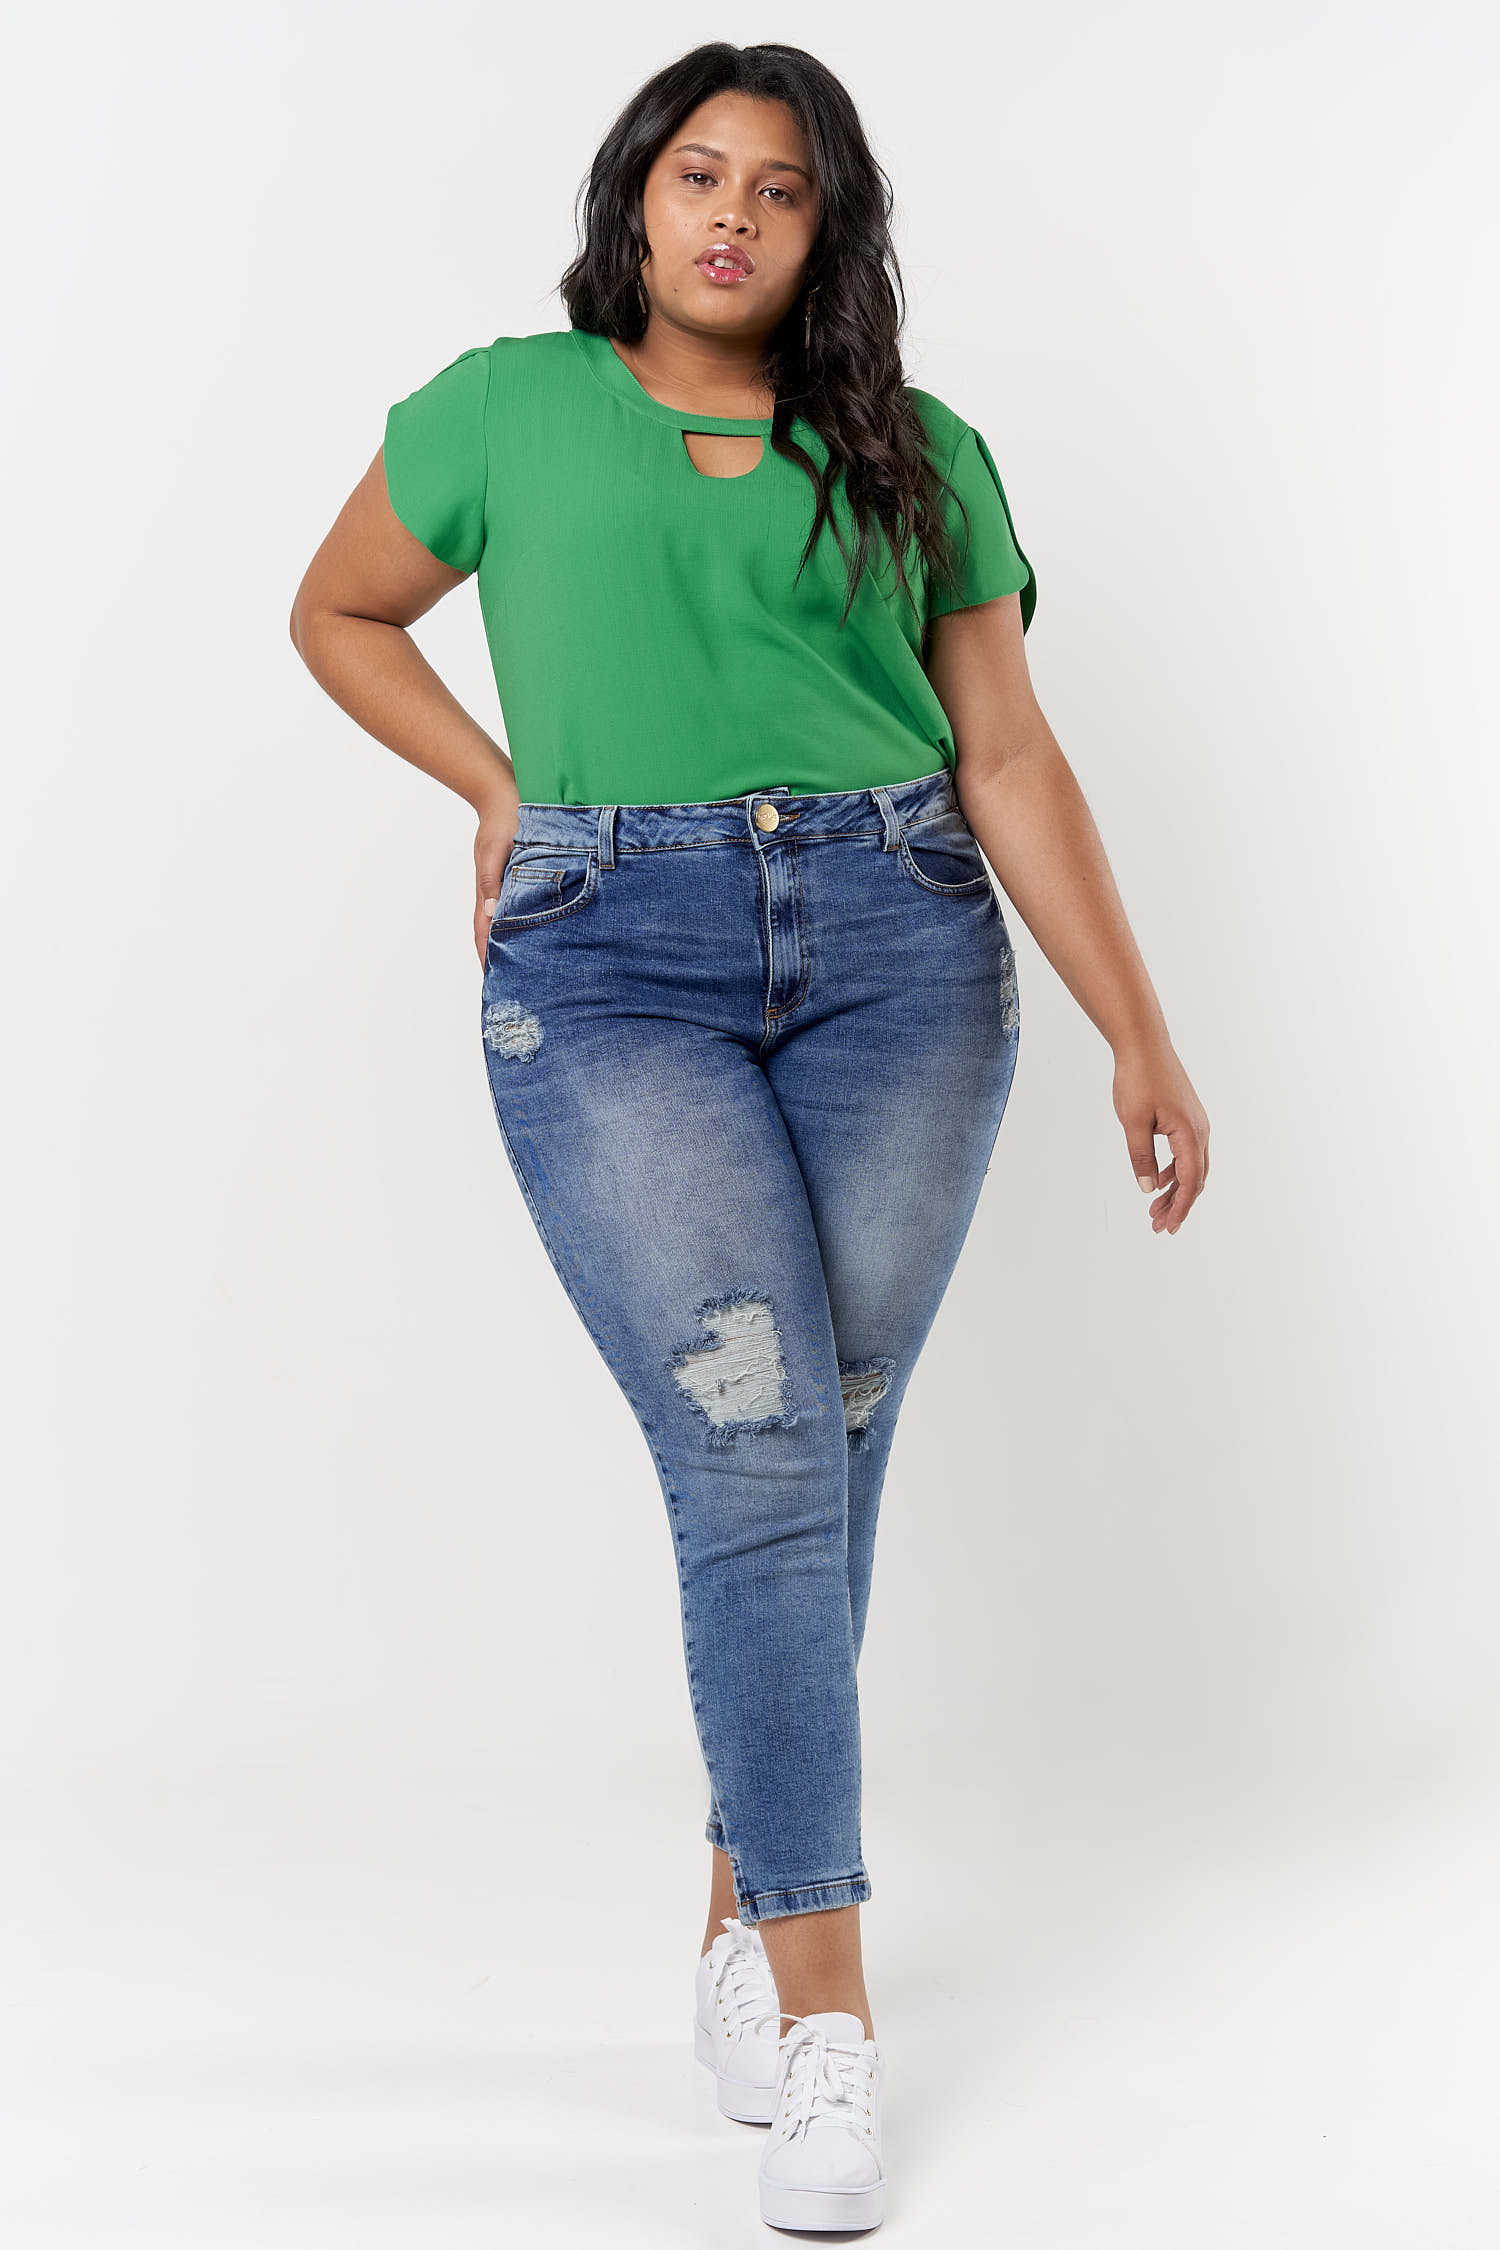 1484L2_Calca_Plus_Size_Jeans_Cropped_Louis_JEANS_1